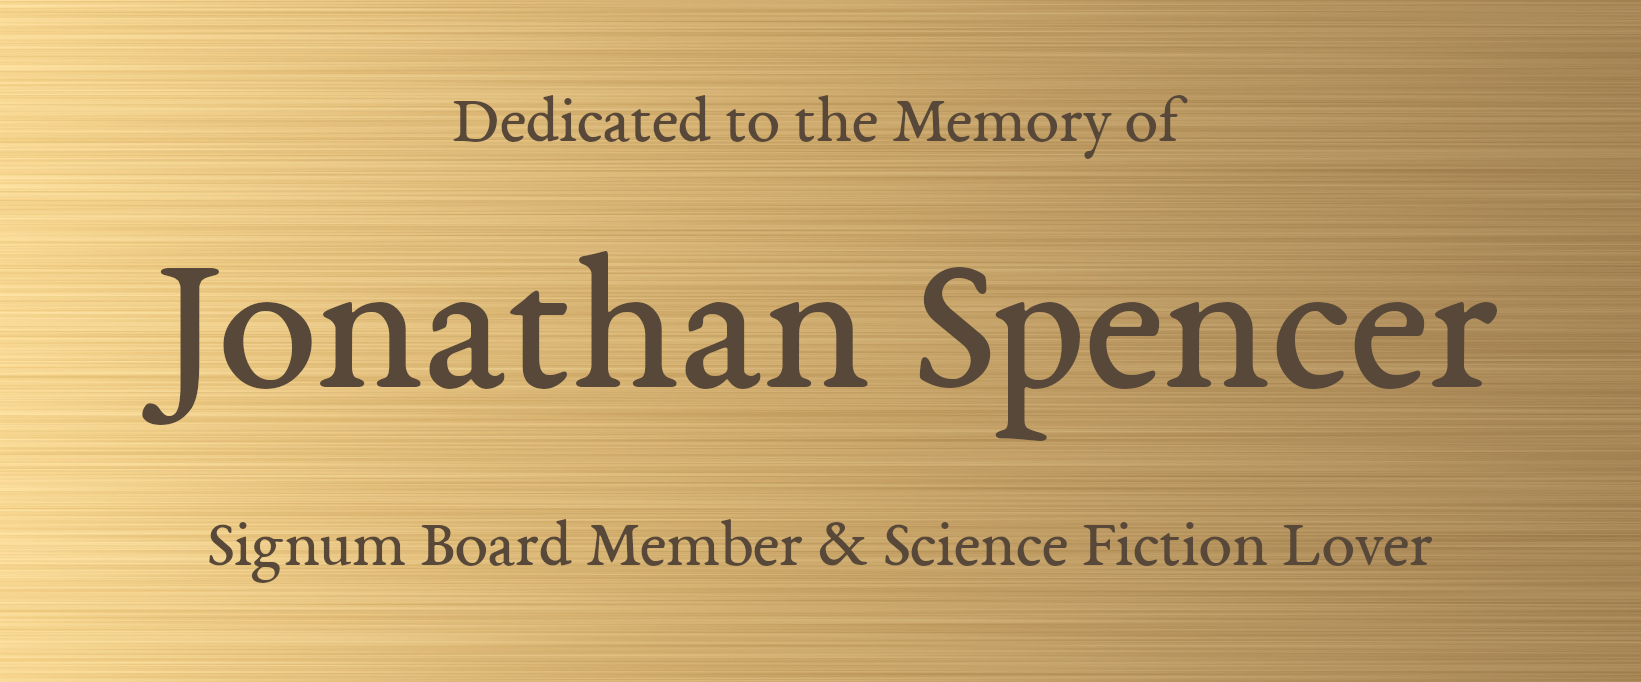 Dedicated to the Memory of Jonathan Spencer, Signum Board Member & Science Fiction Lover